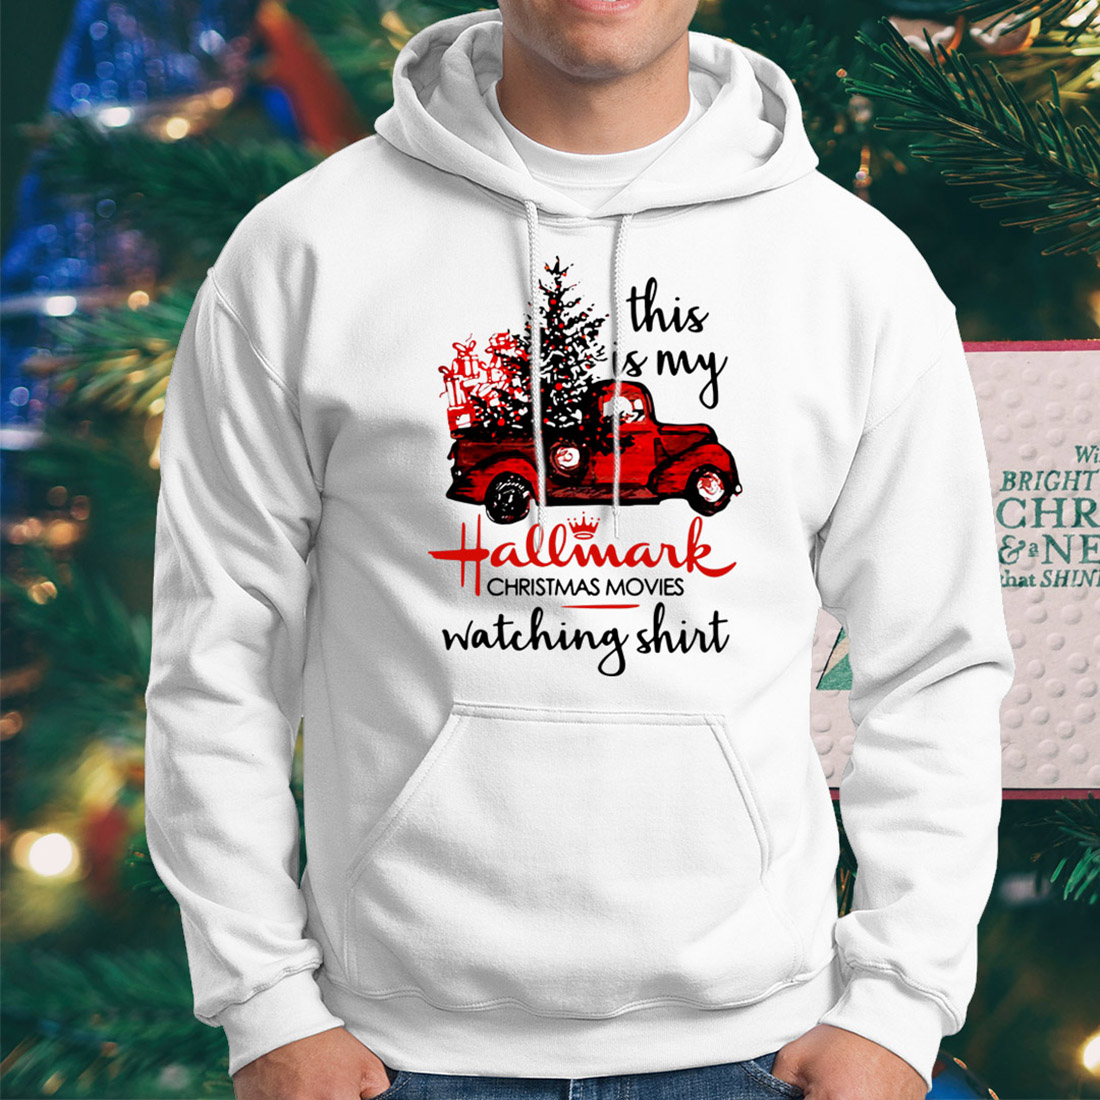 01d354dc5ff This is my Hallmark christmas movies watching shirt